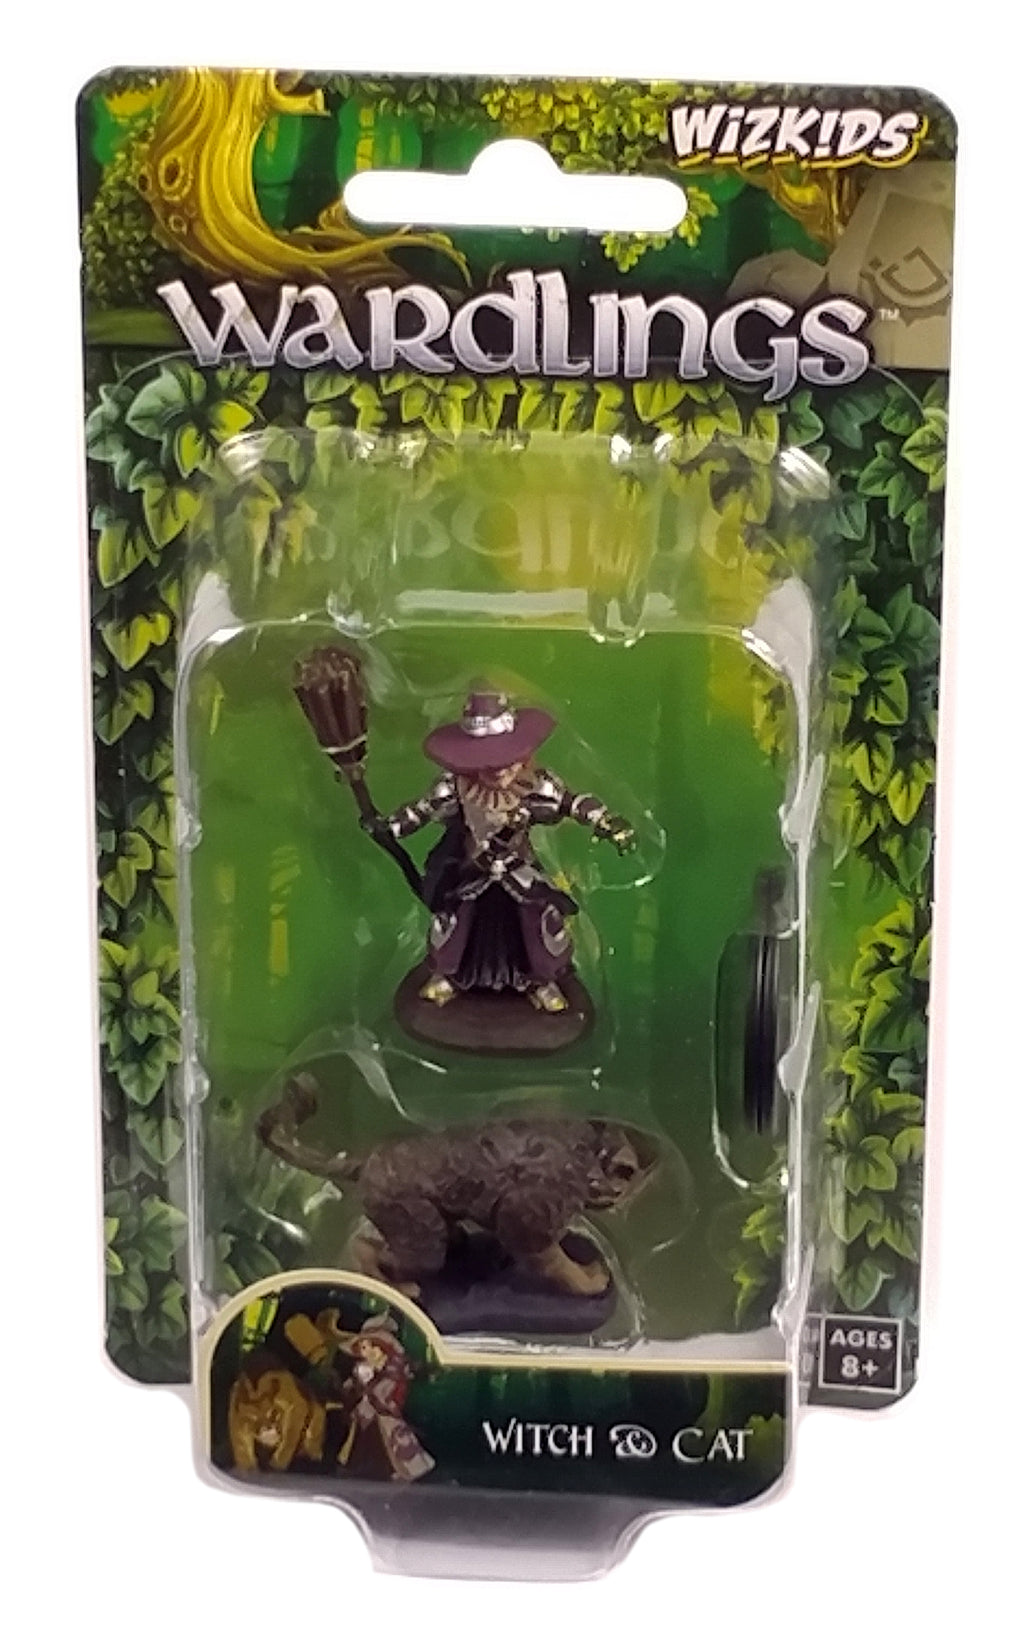 Wardlings Boy Witch & Cat Figure